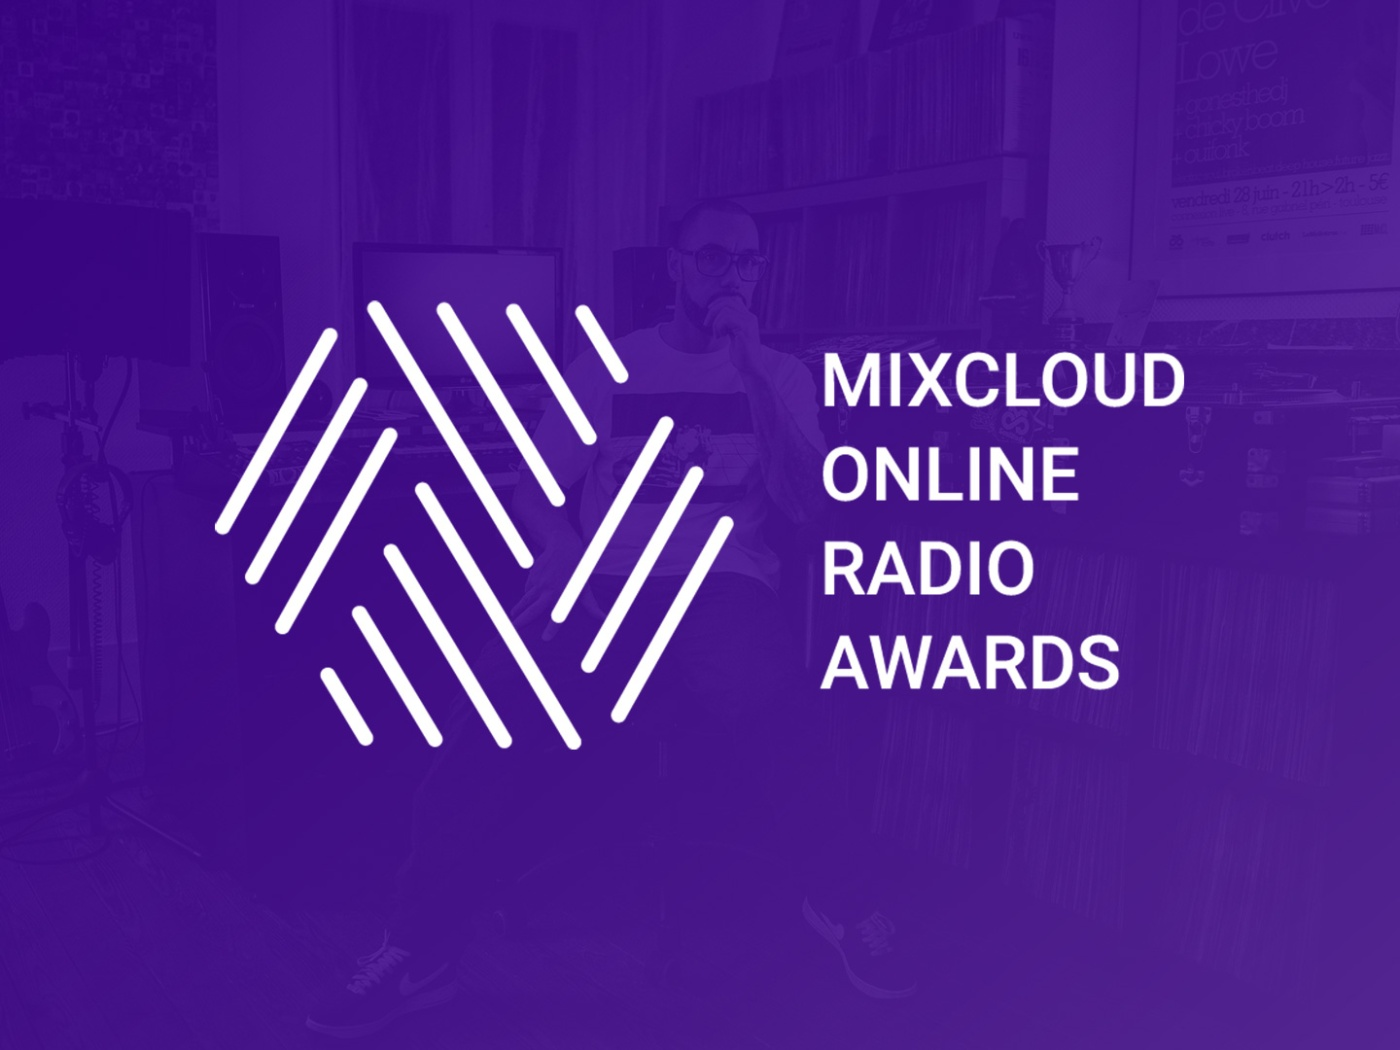 2018 Mixcloud Online Radio Awards winner Gonesthedj